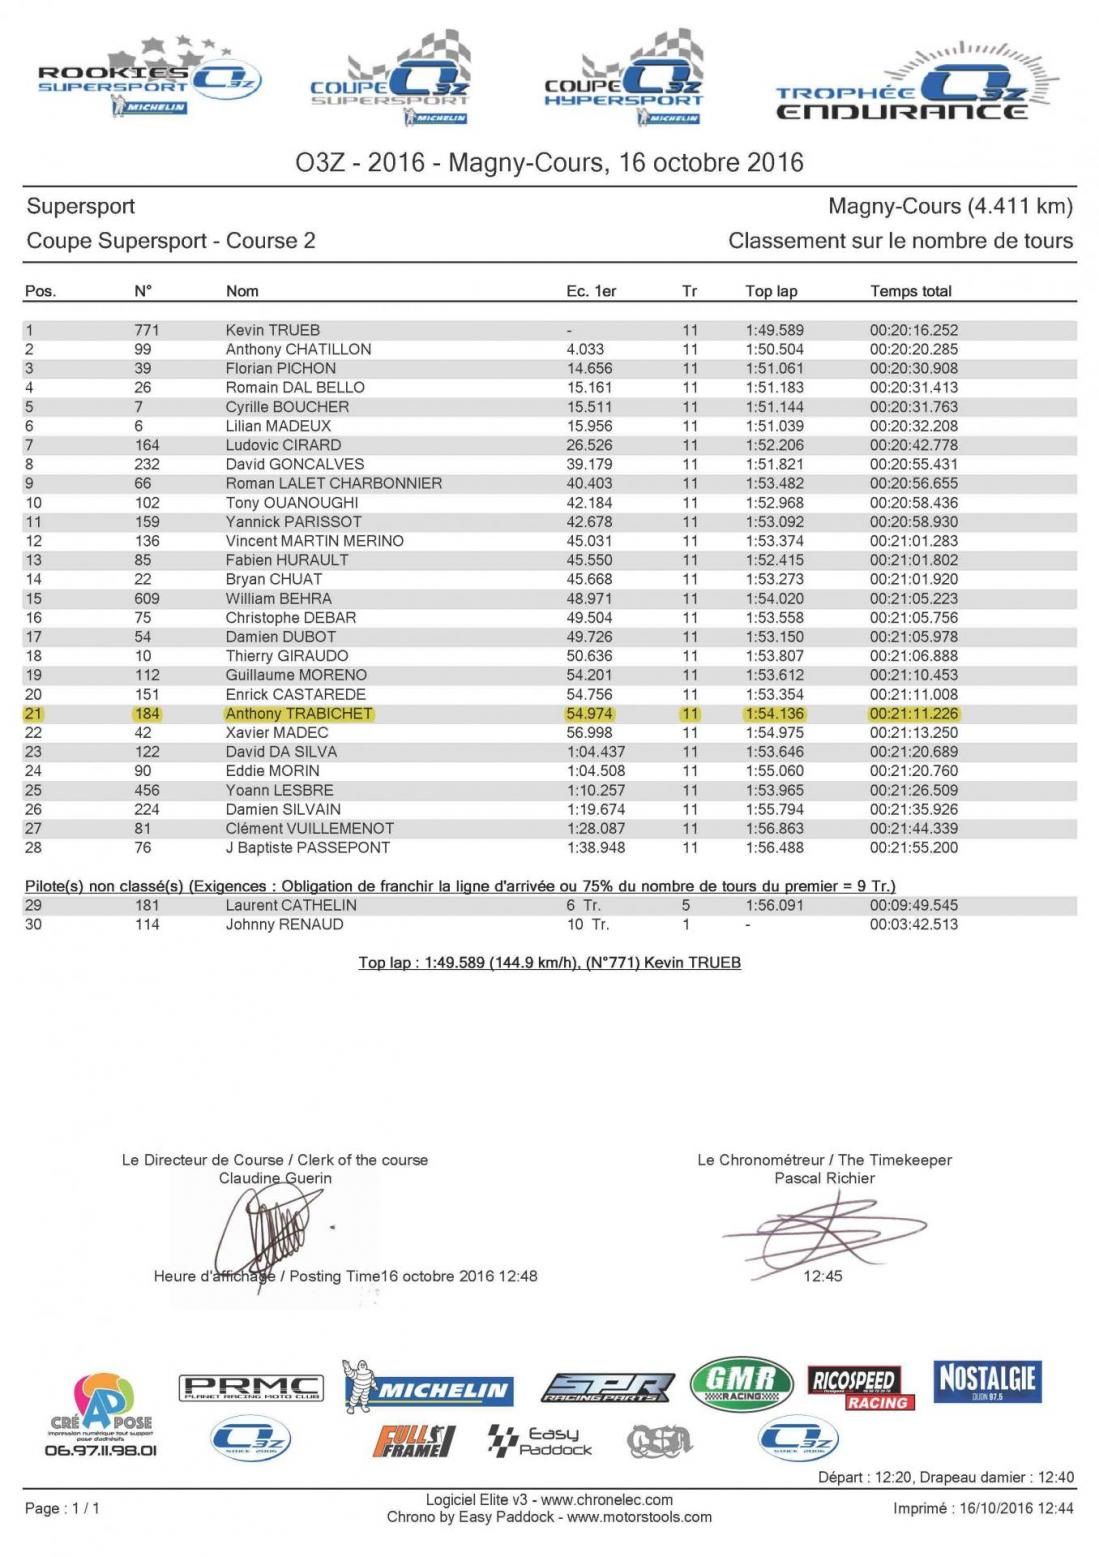 Magny supersport coupe supersport course 2